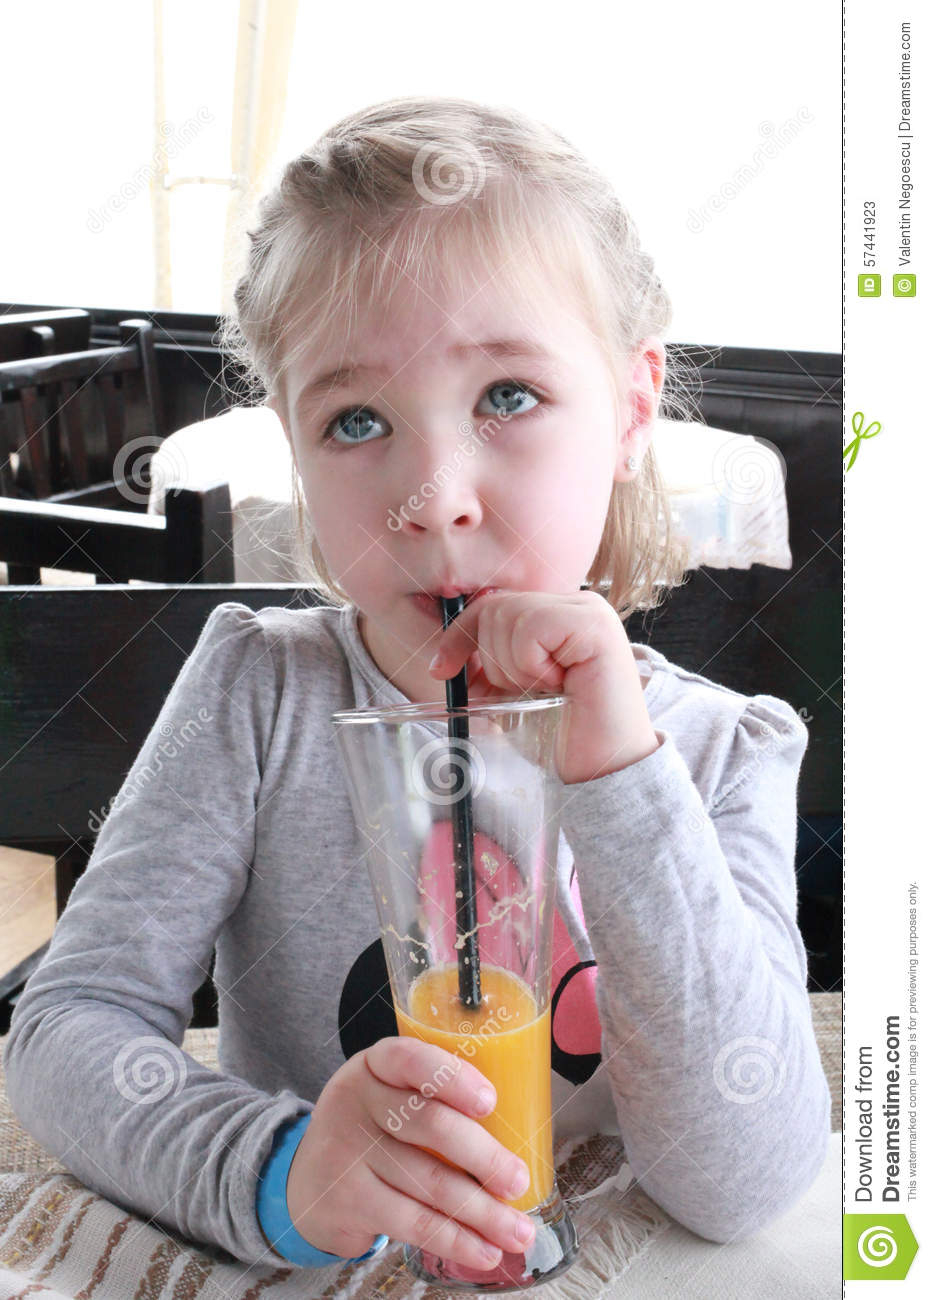 sweet little girl is drinking orange juice through a straw